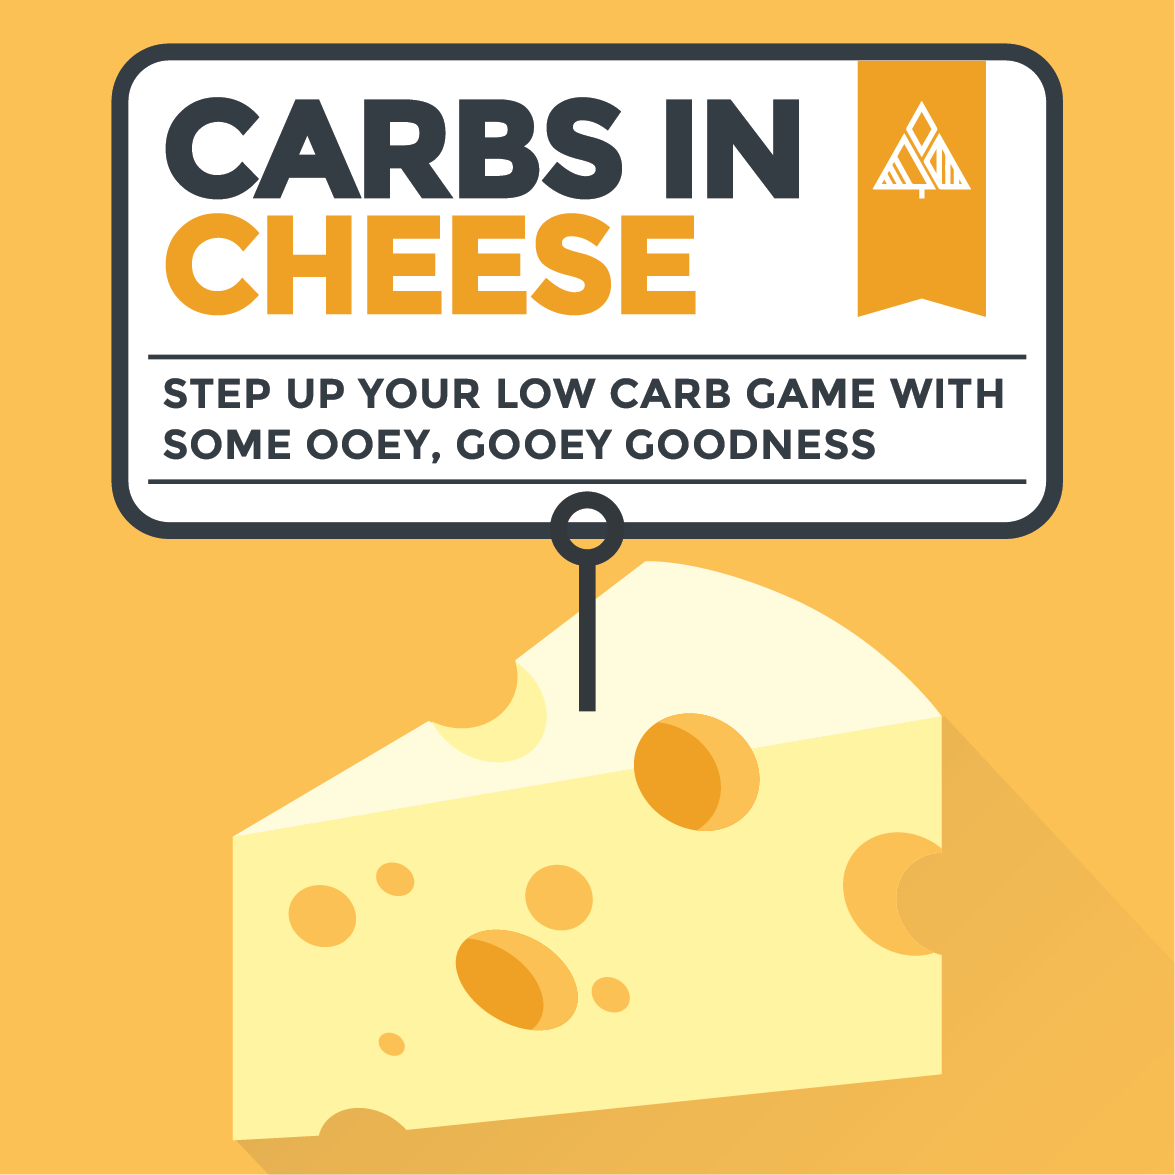 The Full Breakdown of Carbs in Cheese – You'll be stoked